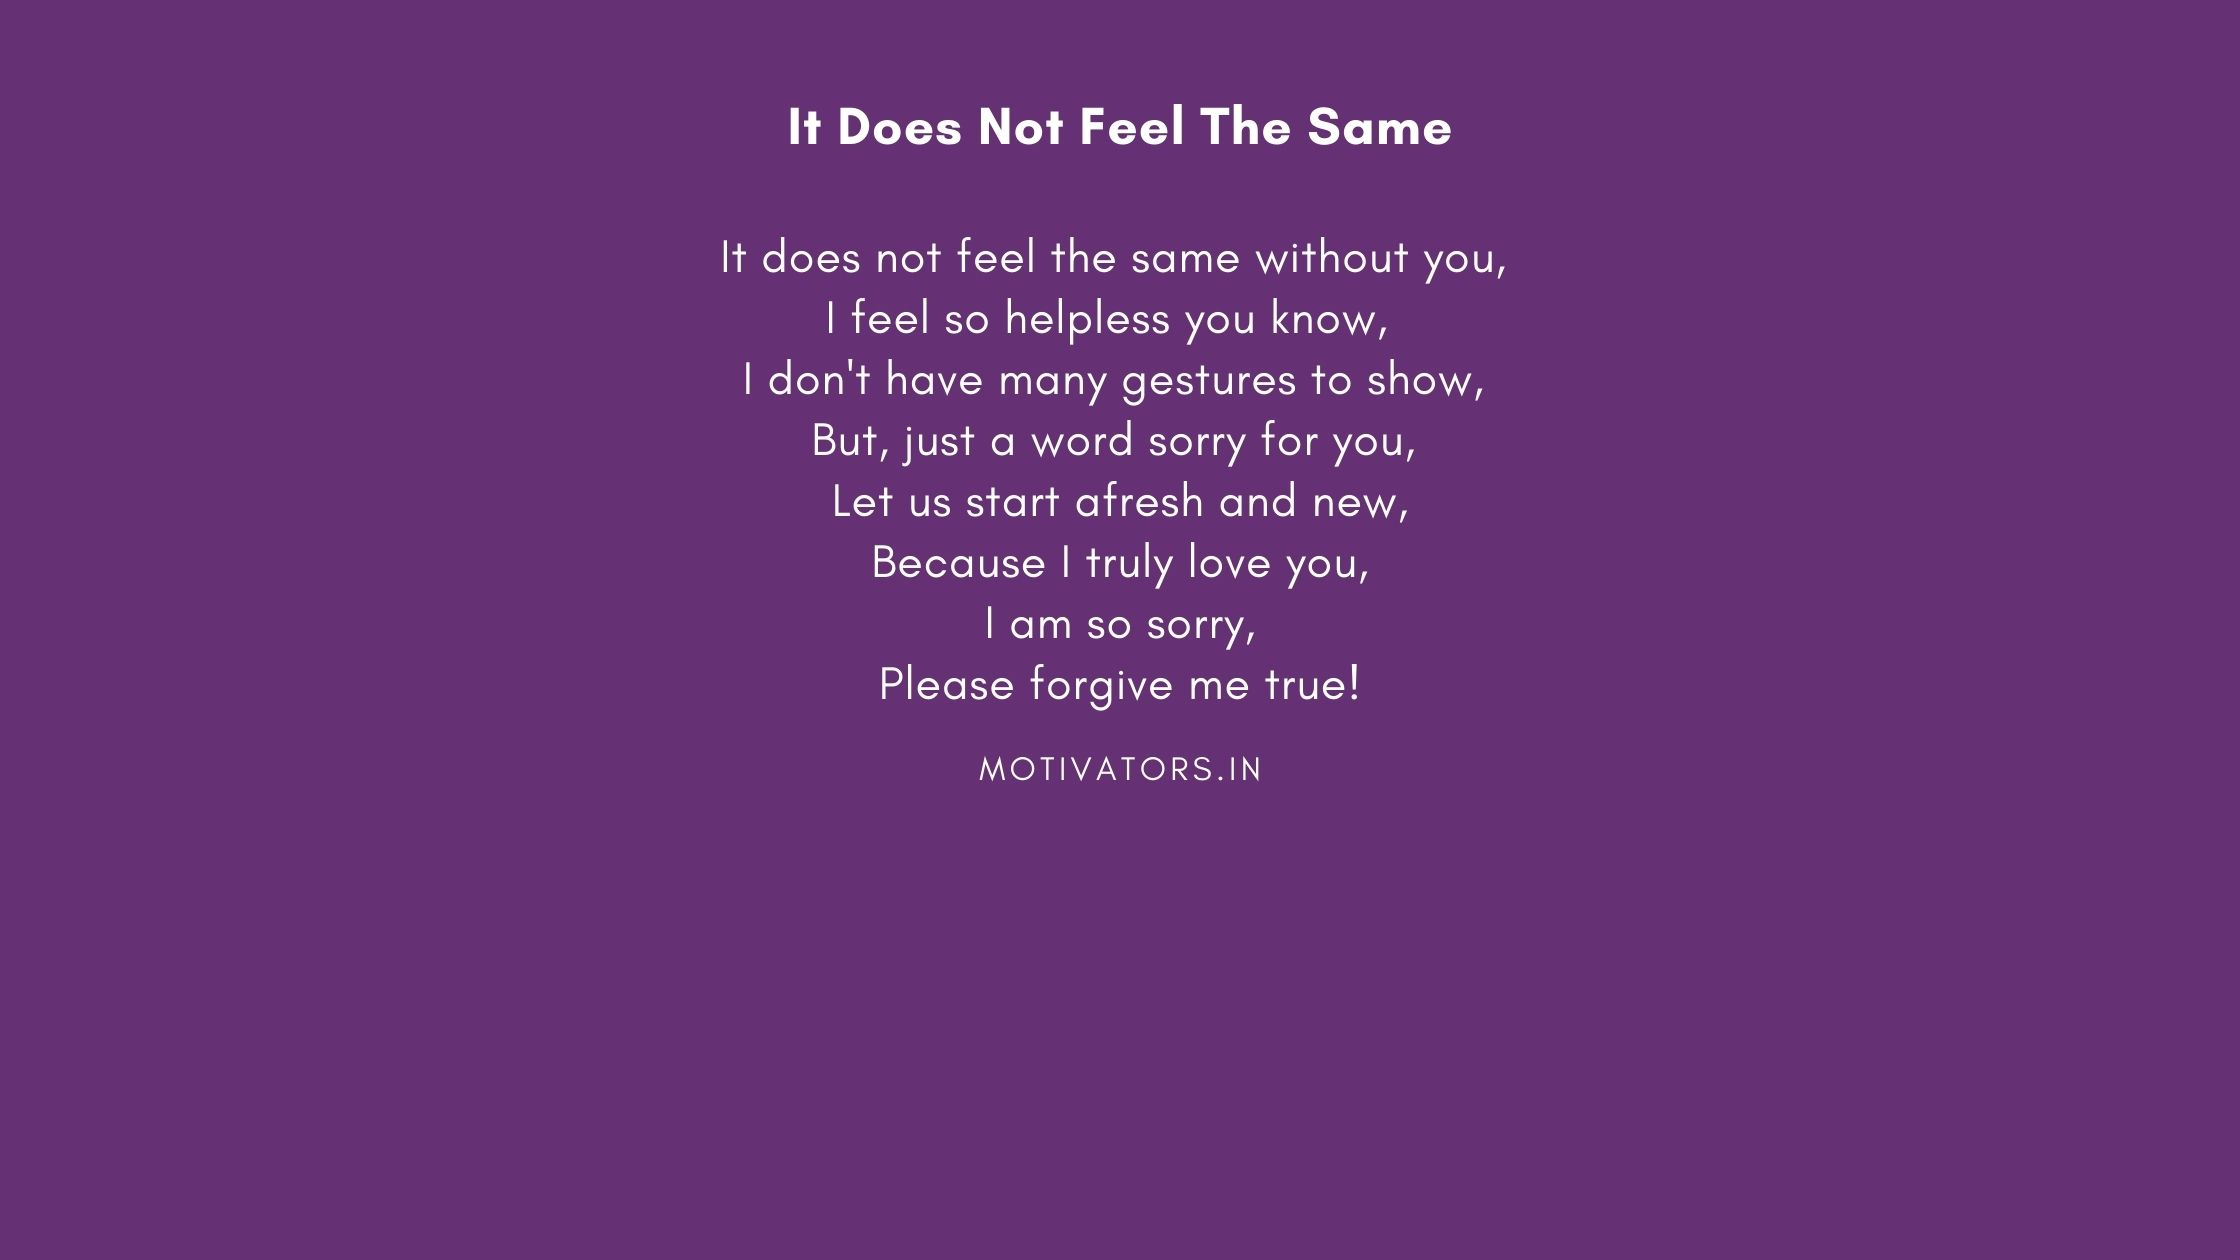 It Does Not Feel The Same